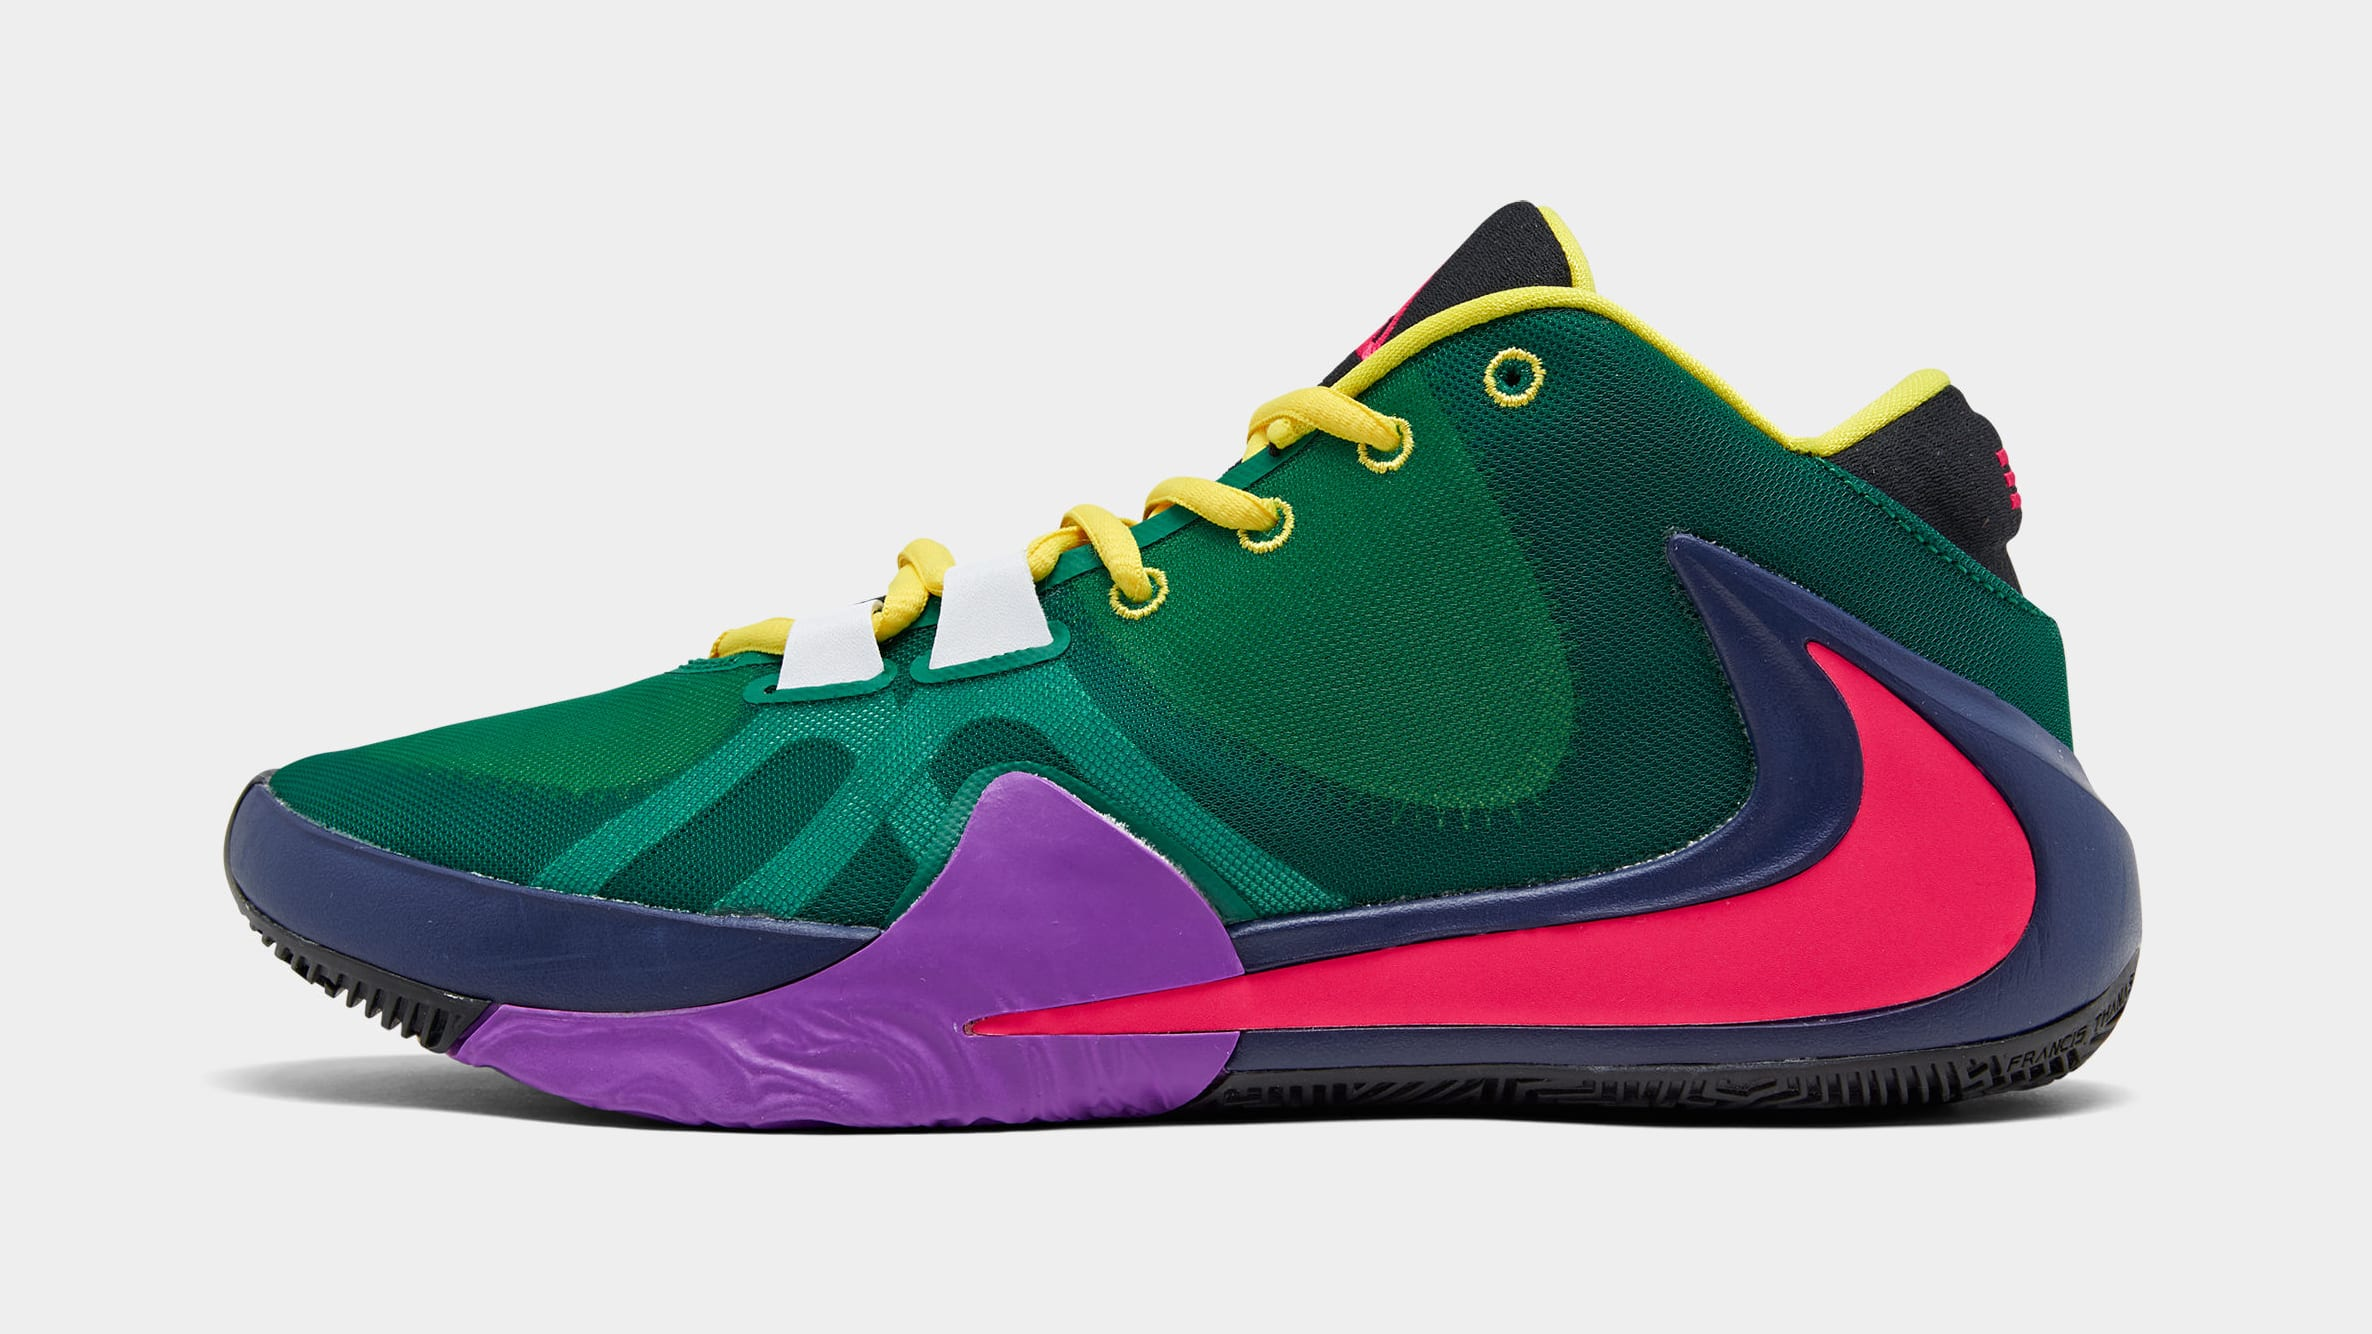 Giannis Antetokounmpo Basketball Shoes Buy Clothes Shoes Online